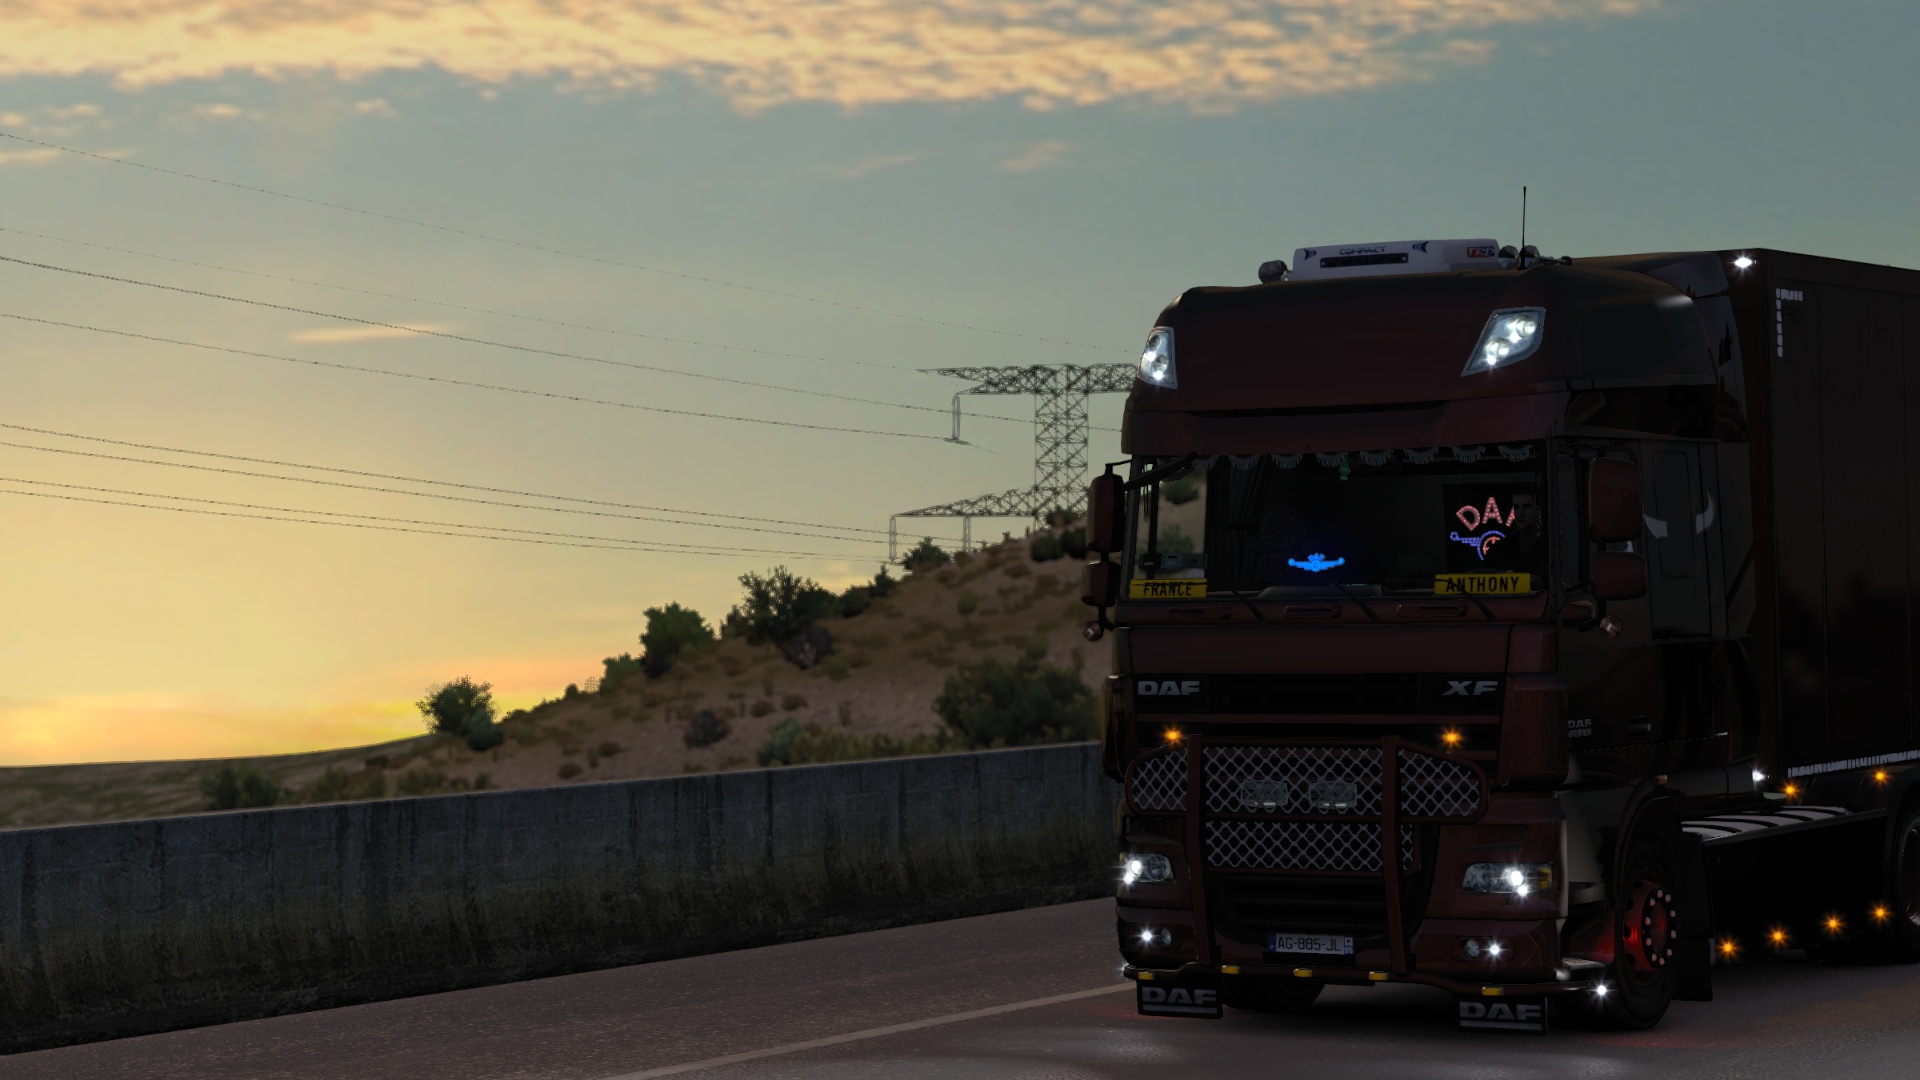 ets2_20190609_152915_00.png